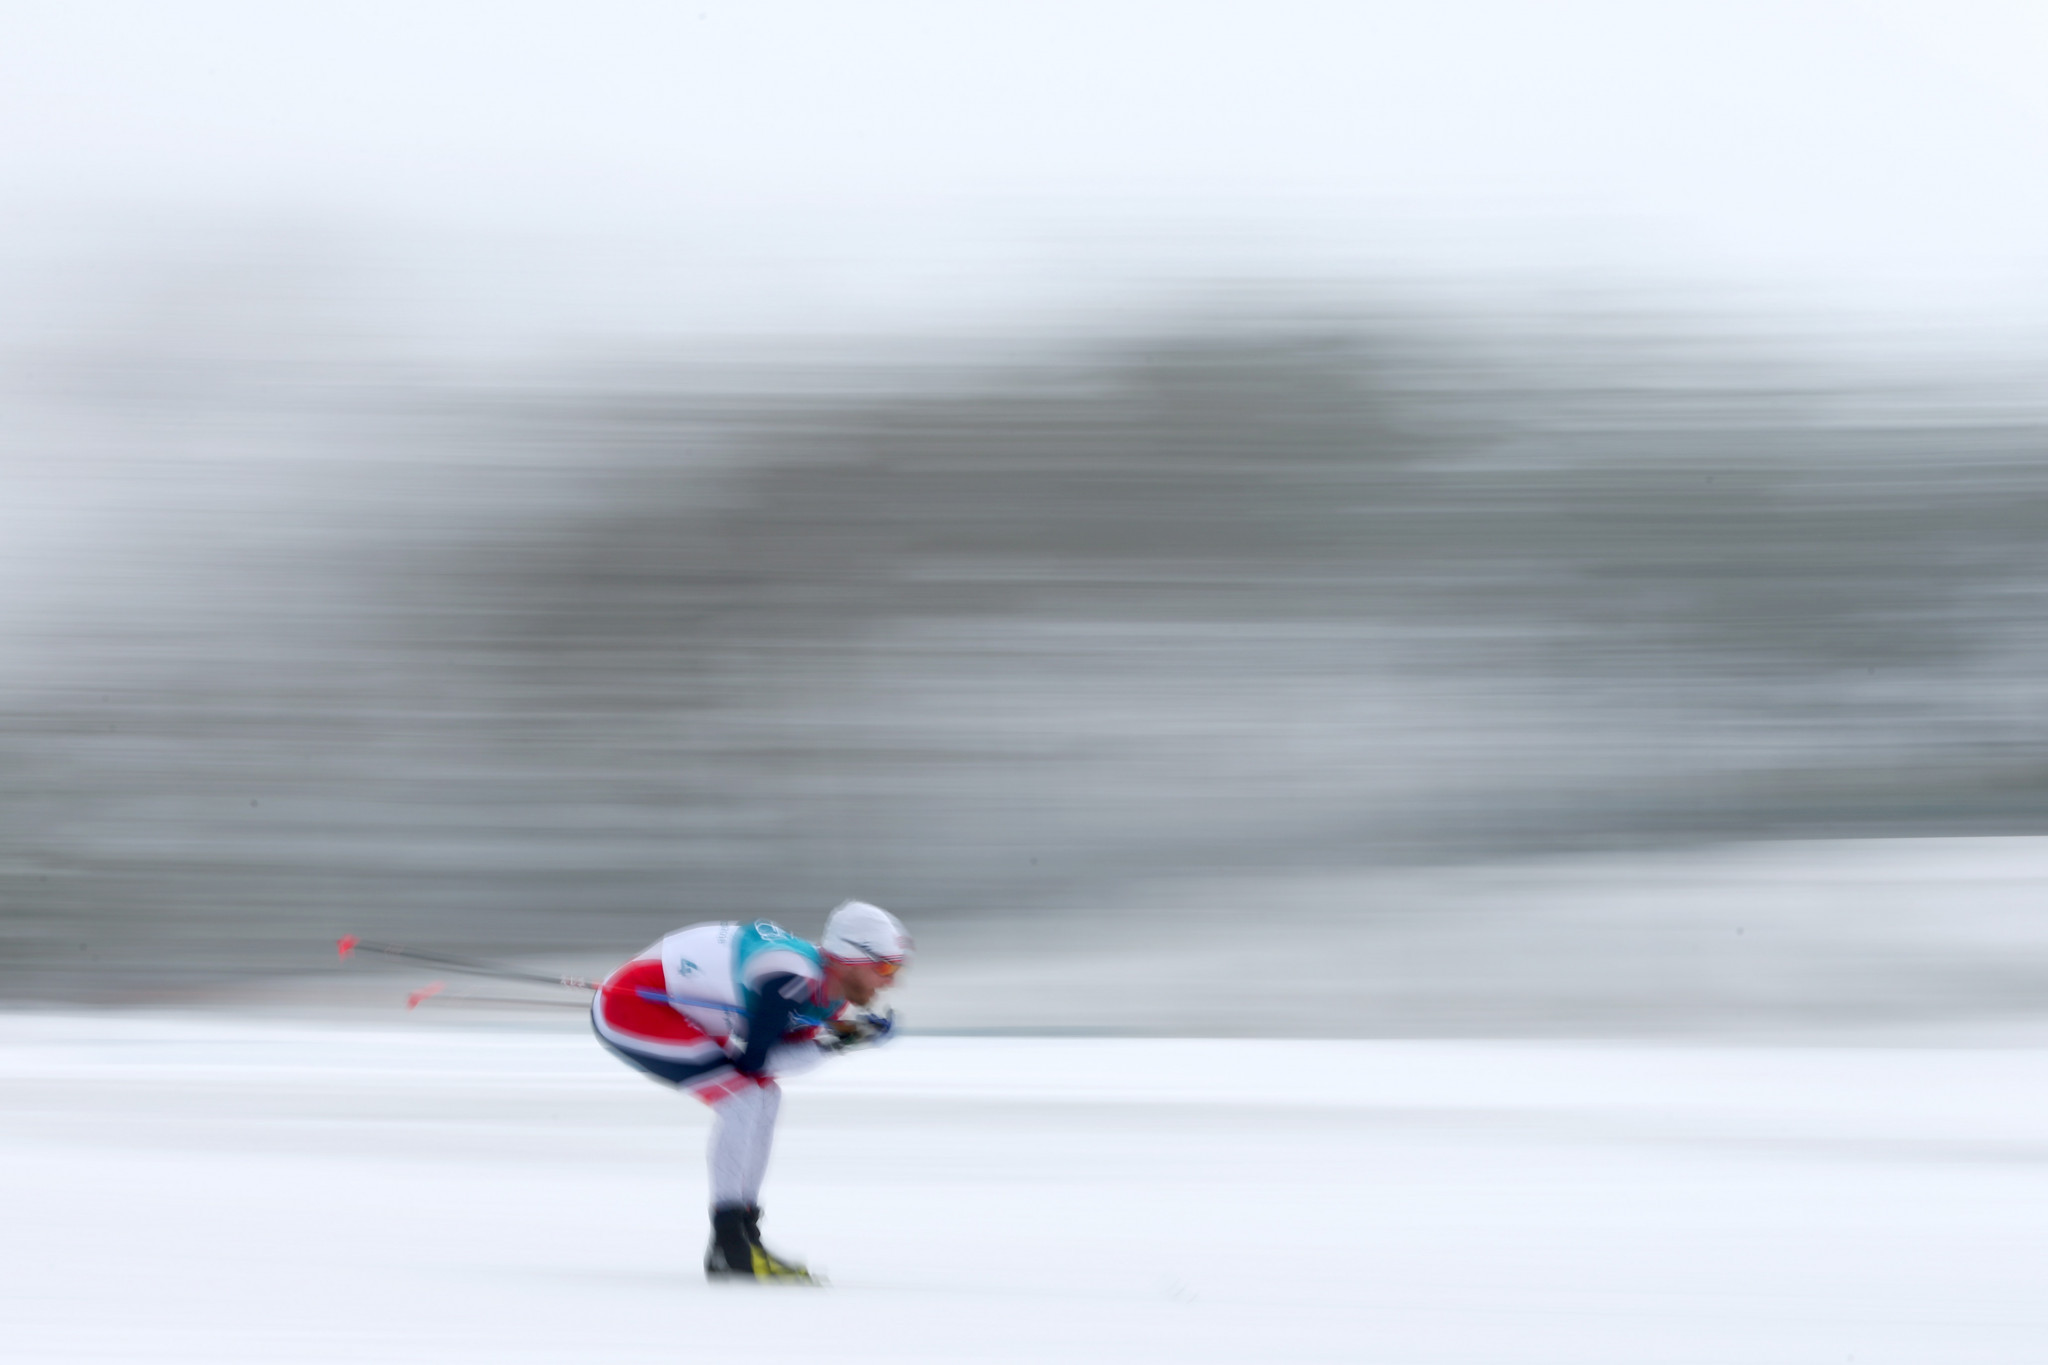 Oslo to host final mass start races of FIS Cross-Country World Cup season